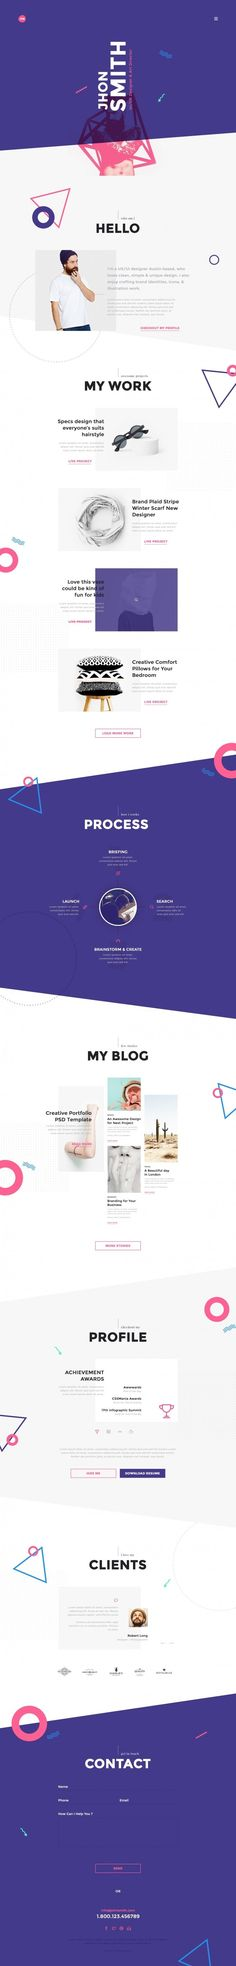 Modern Style Free Resume Template Print Ready Designs - resume website design